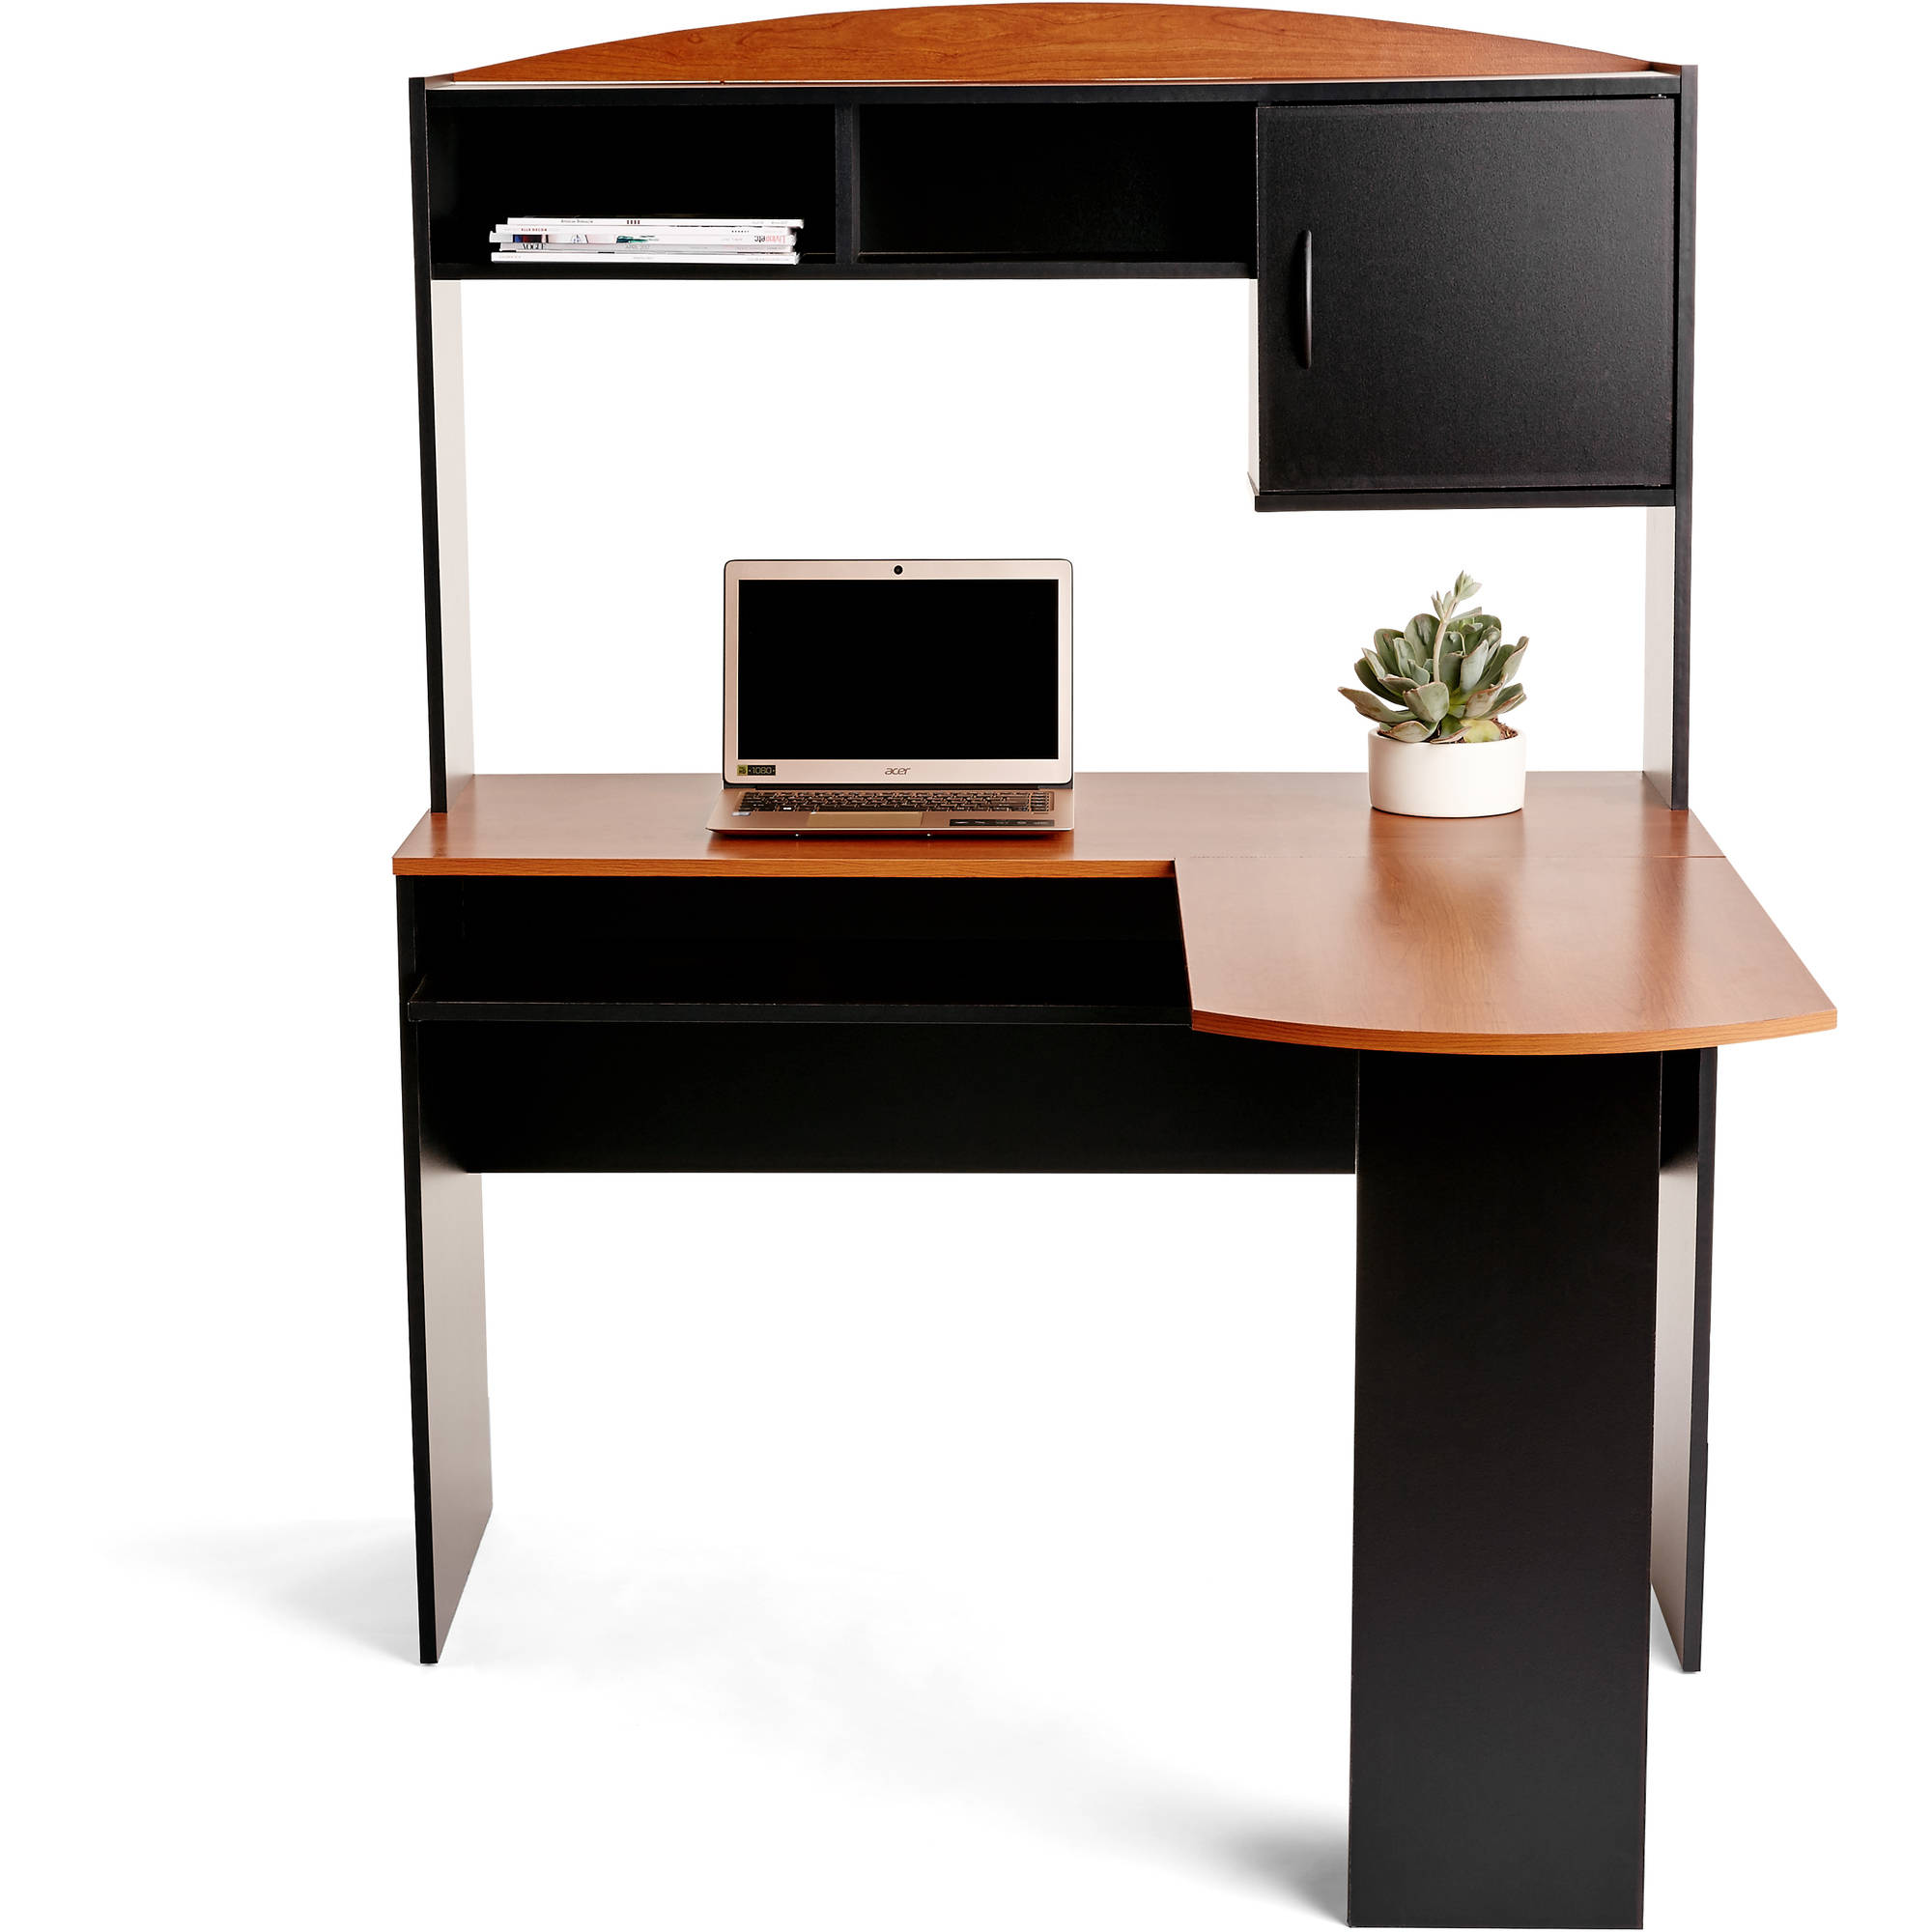 l shaped desk mainstays l-shaped desk with hutch, multiple finishes RYNDDSP